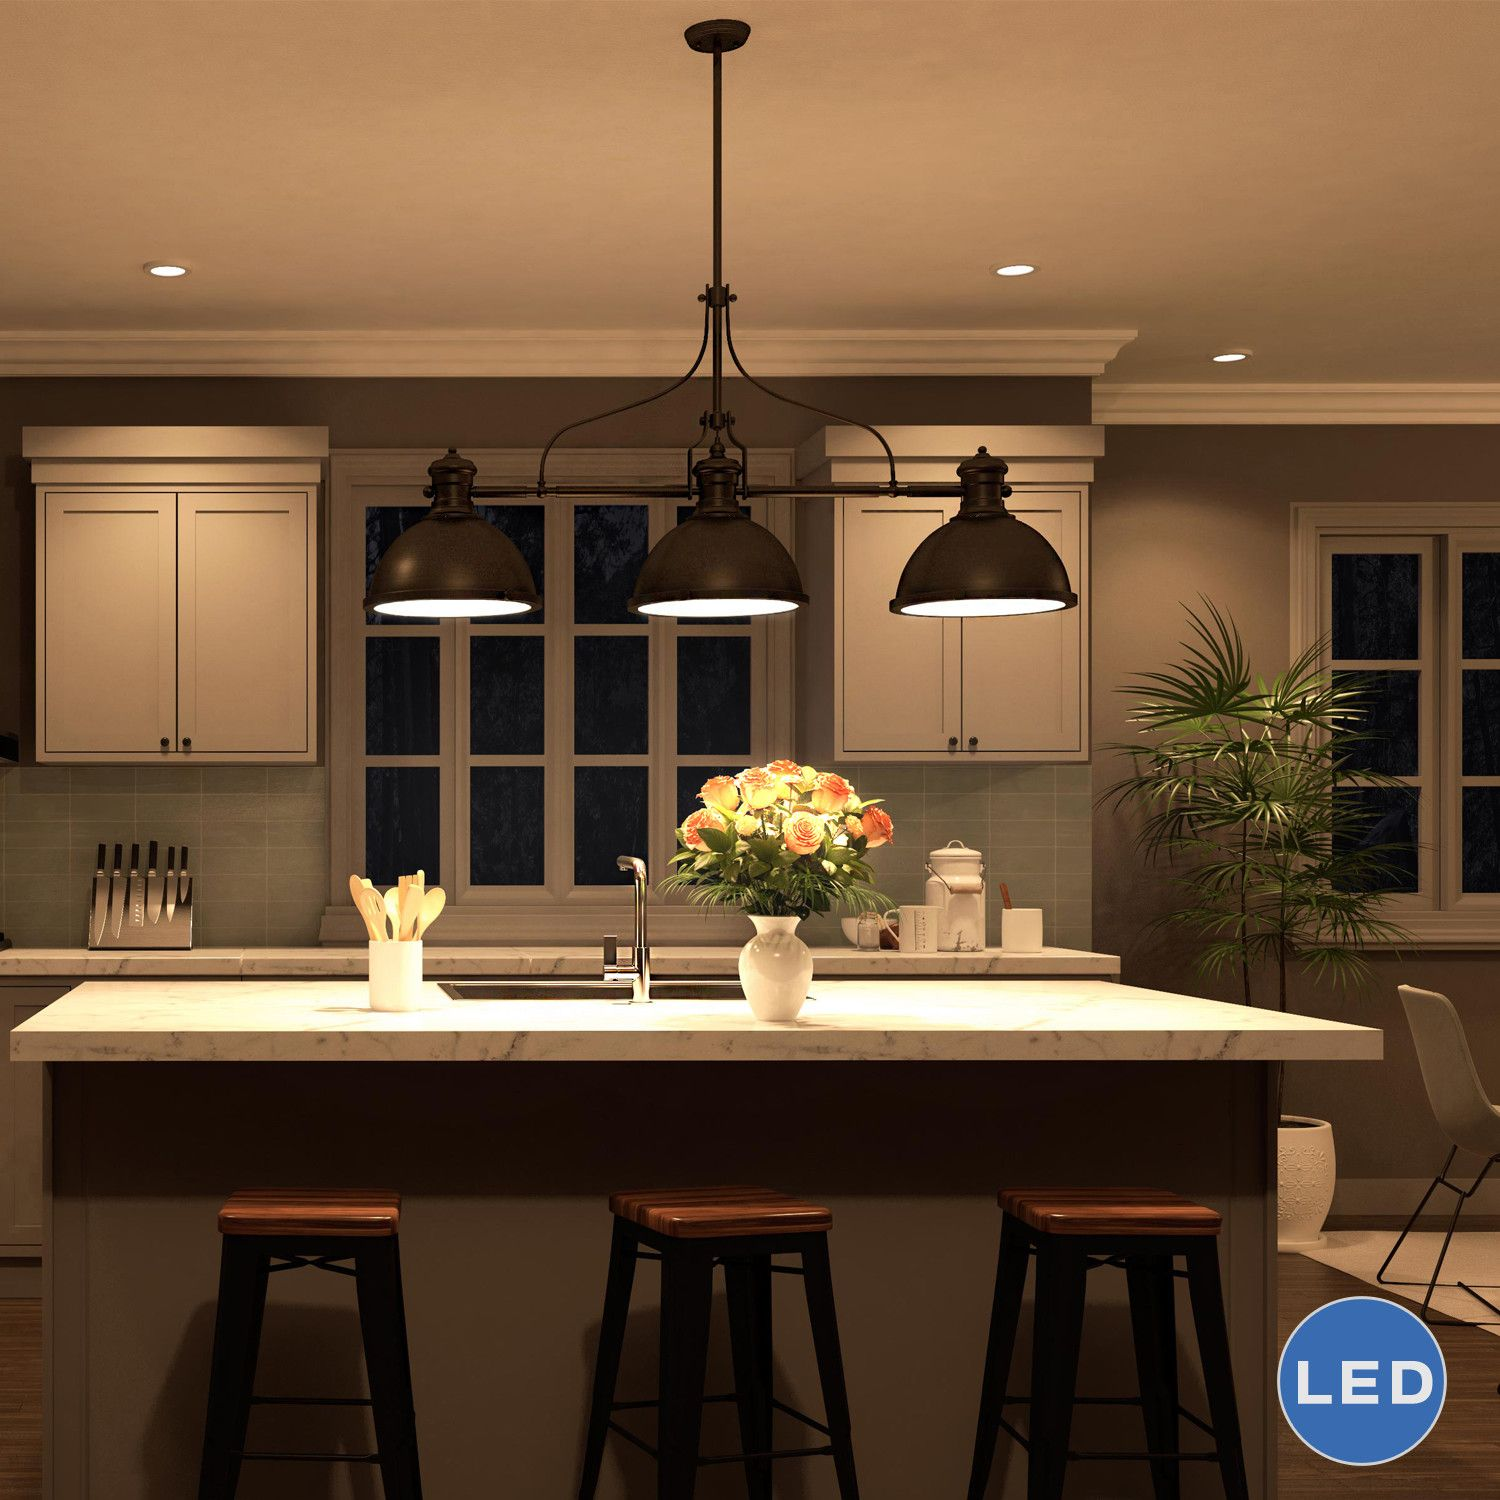 Best Ideas Of Pendant Lighting For Kitchen Dining Room And - One pendant light over island